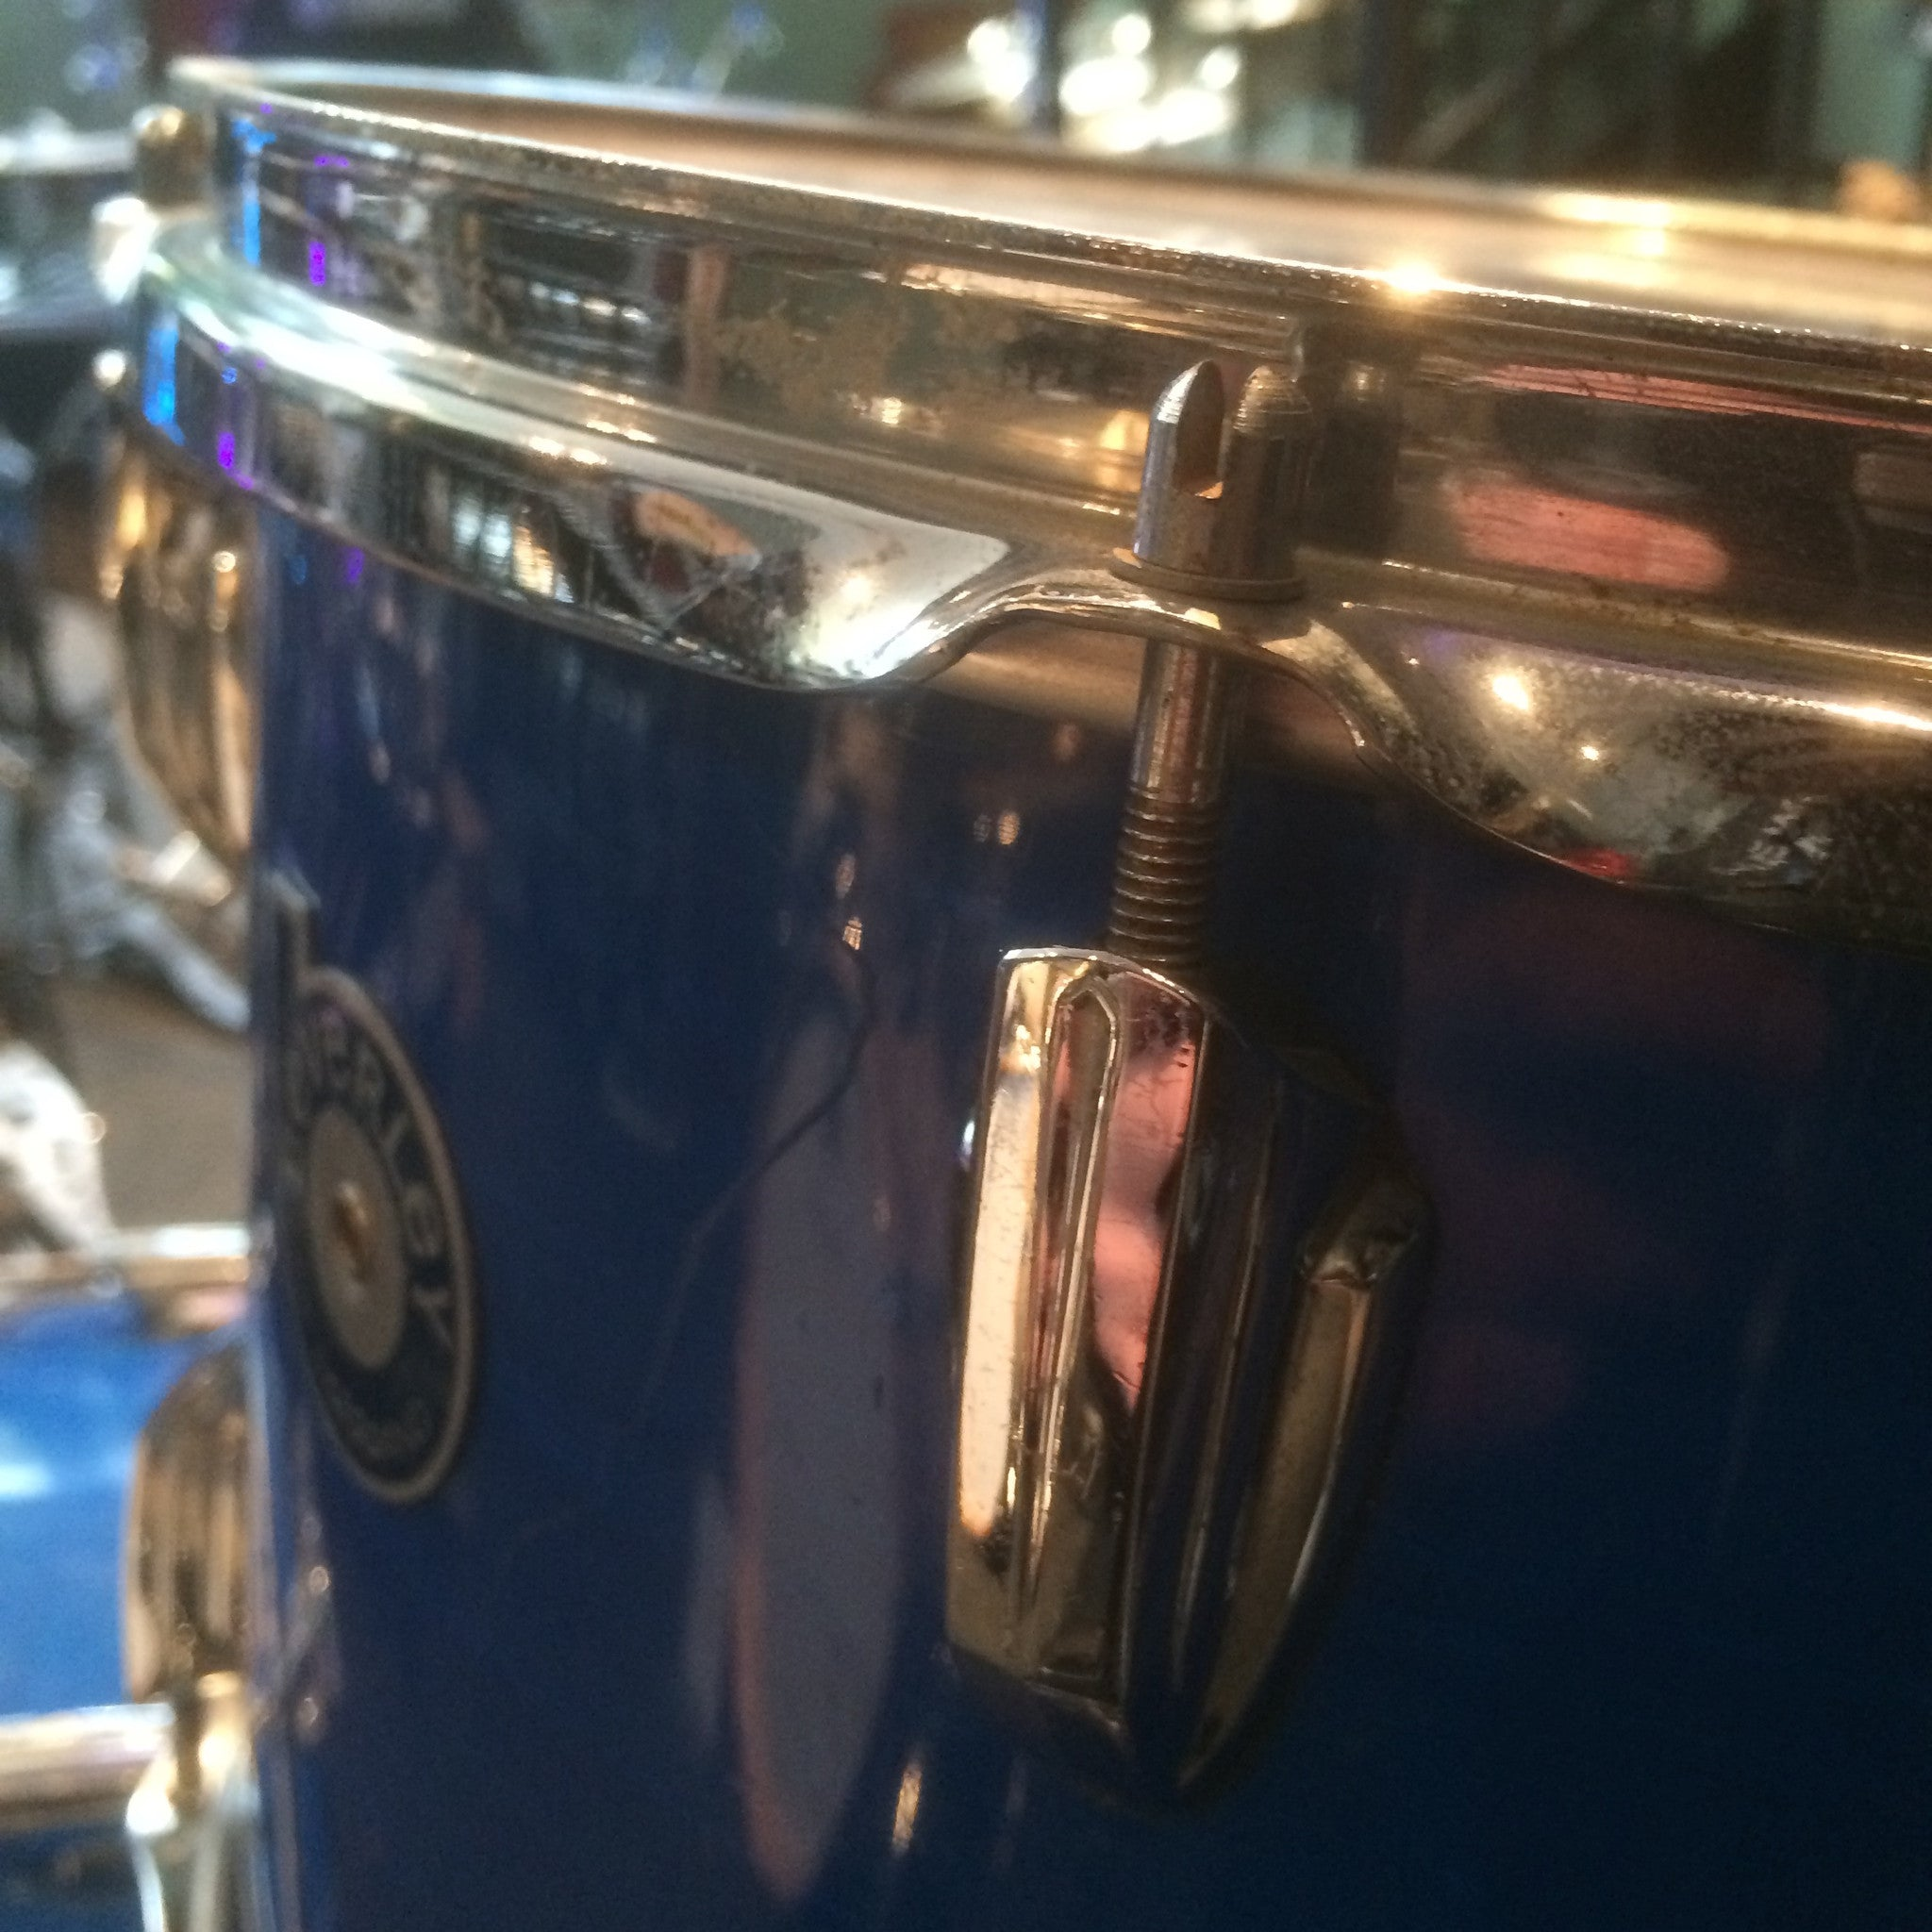 Beverly blue vintage drum kit at Newcastle Drum Centre